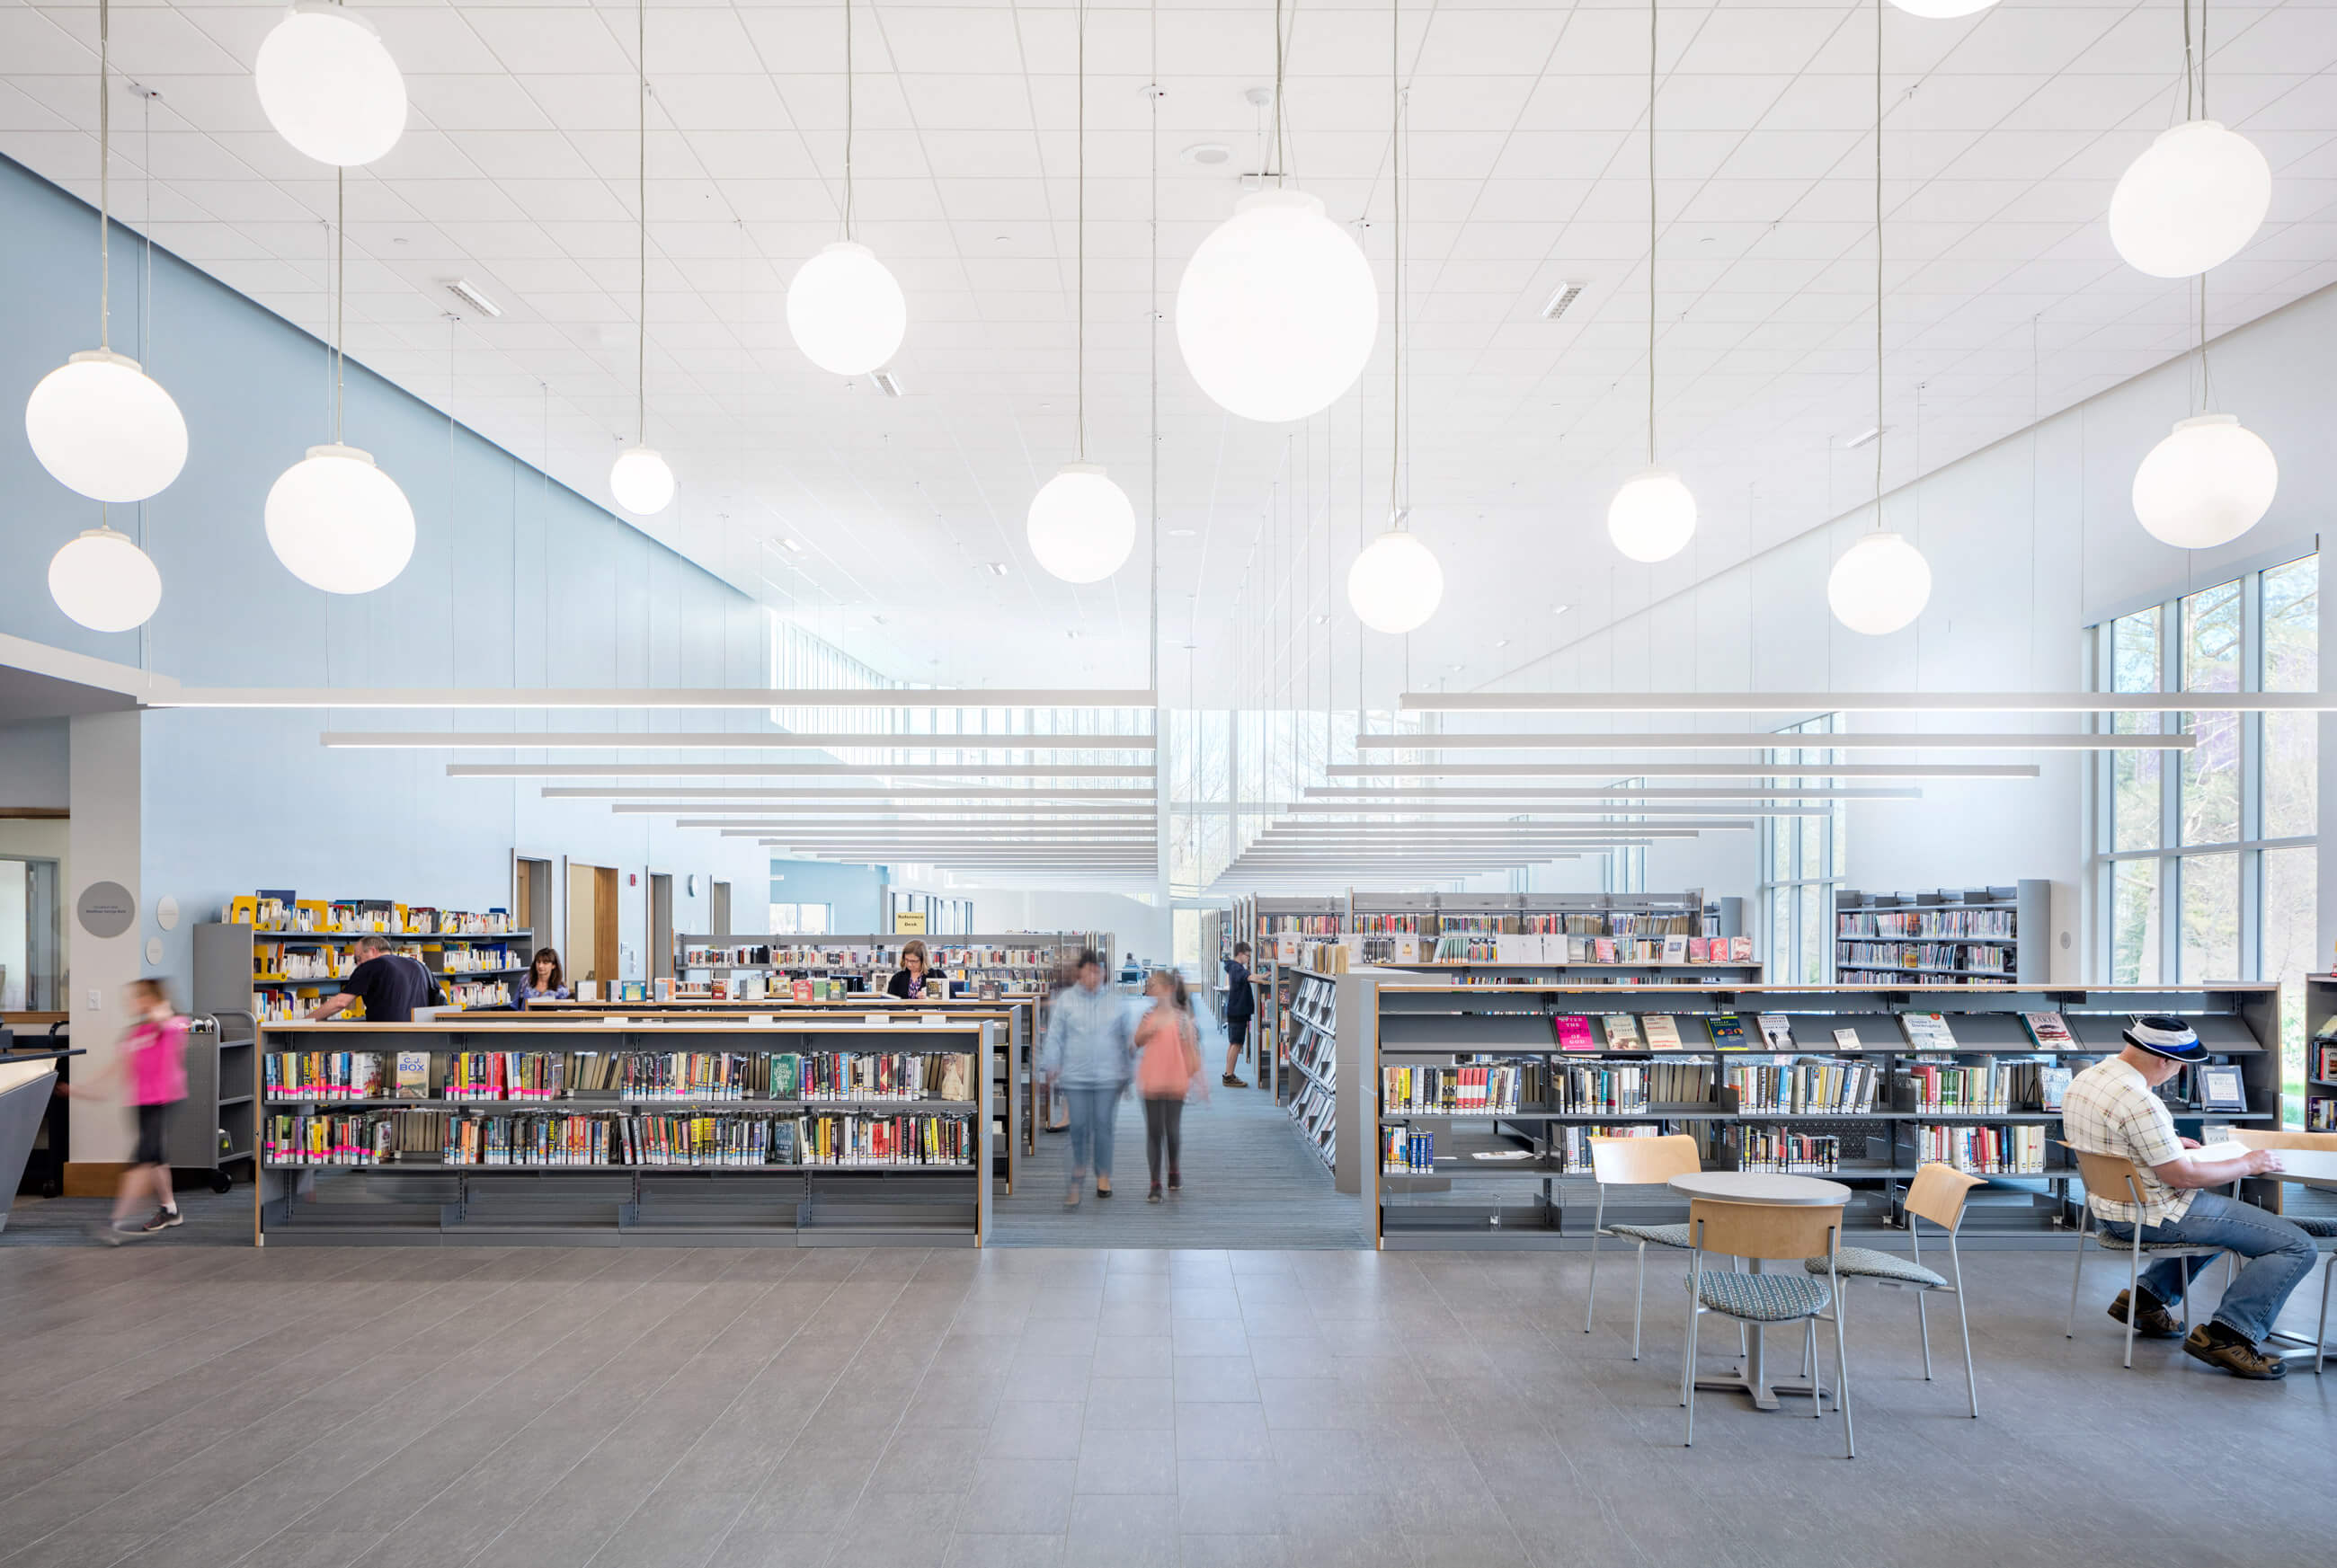 Low library stacks with open space and orb lights hanging from a high ceiling. Light blue walls and white ceiling accentuate natural daylight.